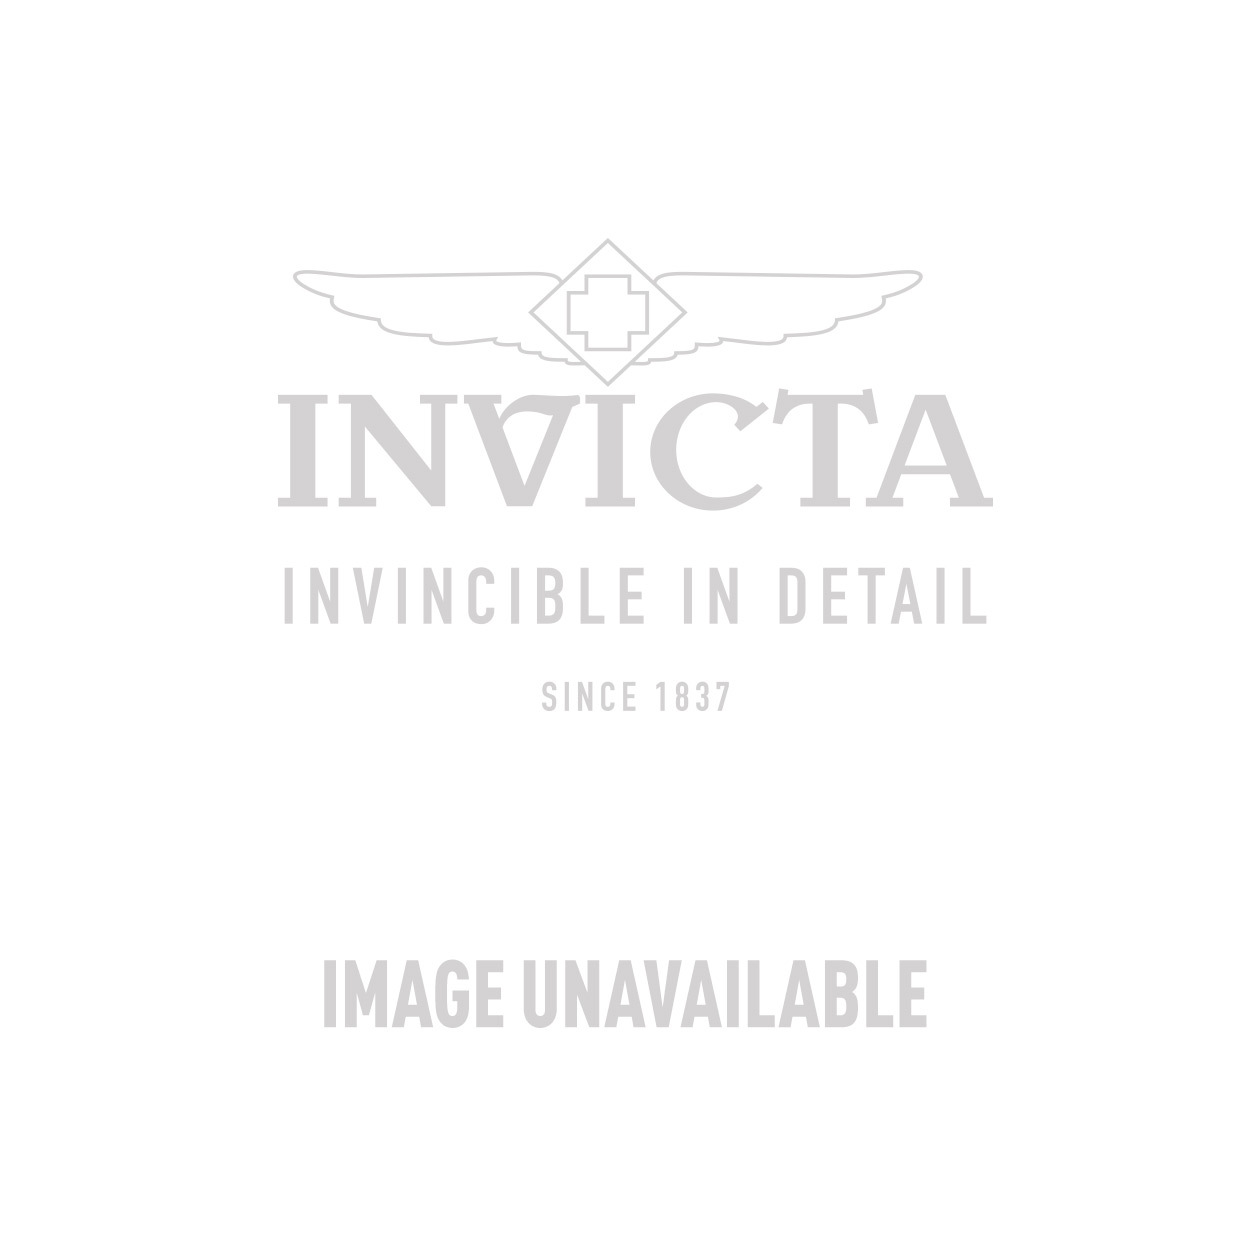 Invicta Venom Swiss Made Quartz Watch - Rose Gold, Stainless Steel case Stainless Steel band - Model 16806